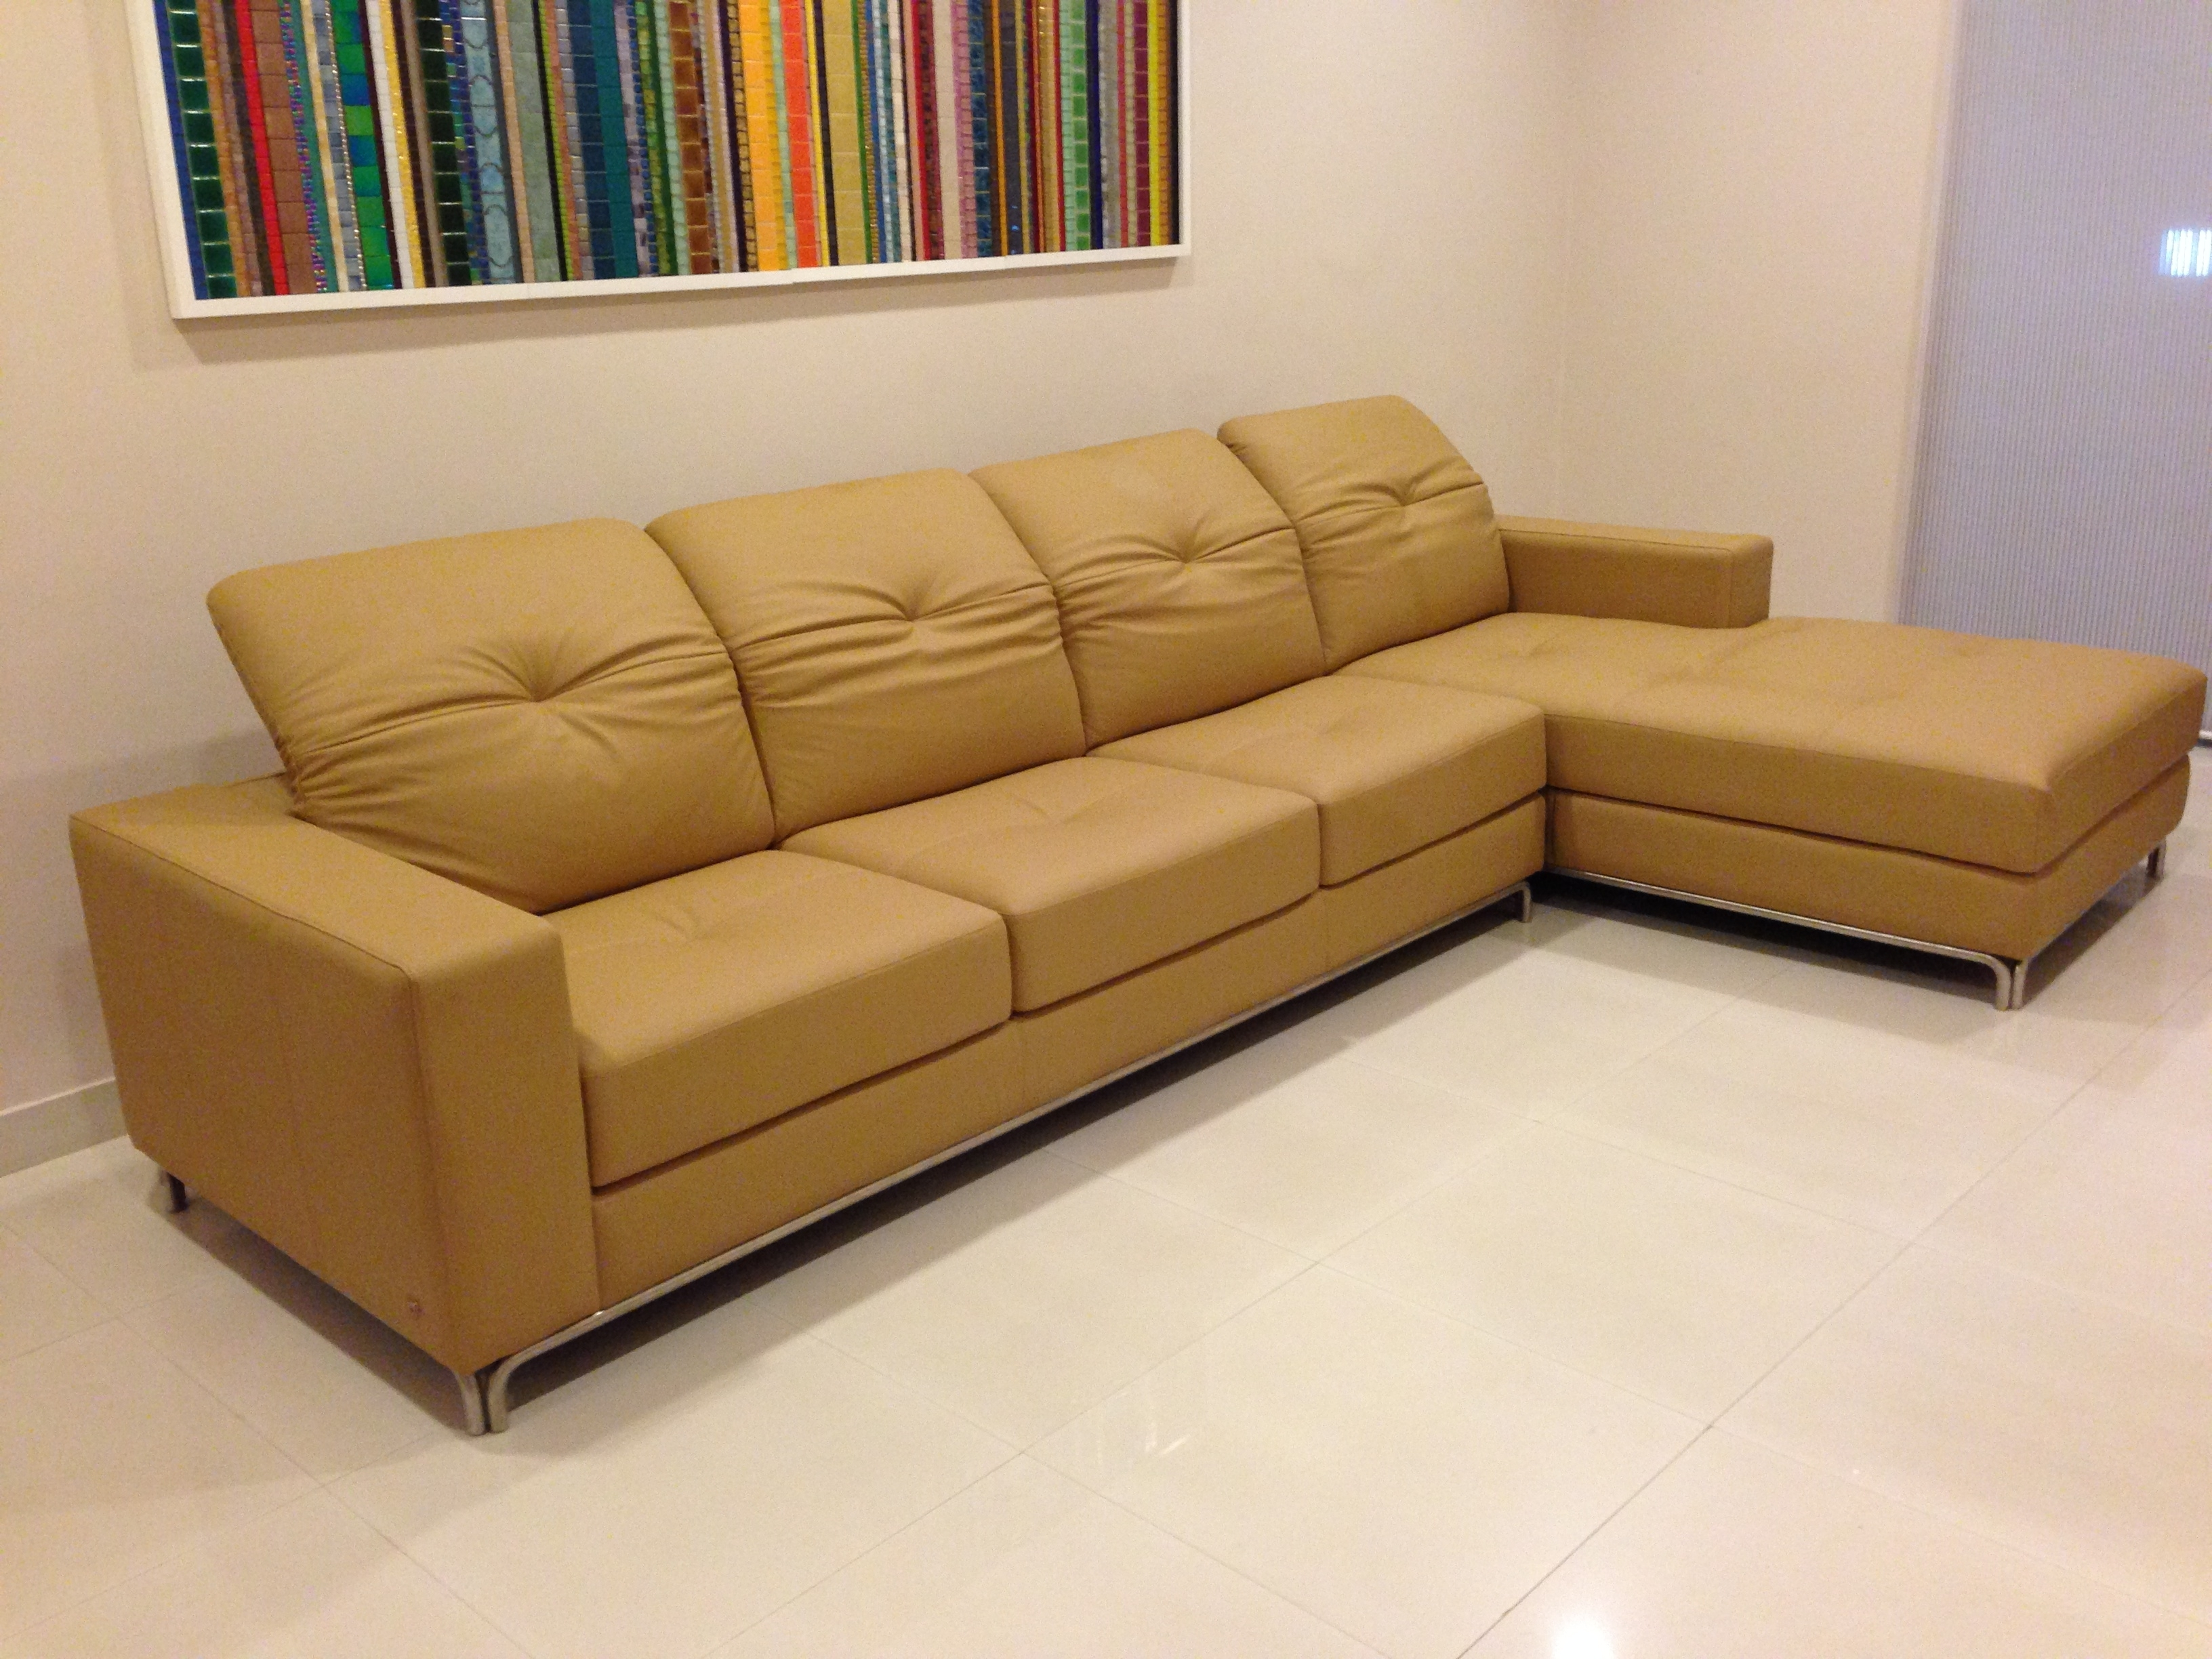 Sectional Sofas At Bangalore Pertaining To Widely Used Karlsson Leather: Custom Leather Sofas, Recliners, Car Seat Covers (View 13 of 15)